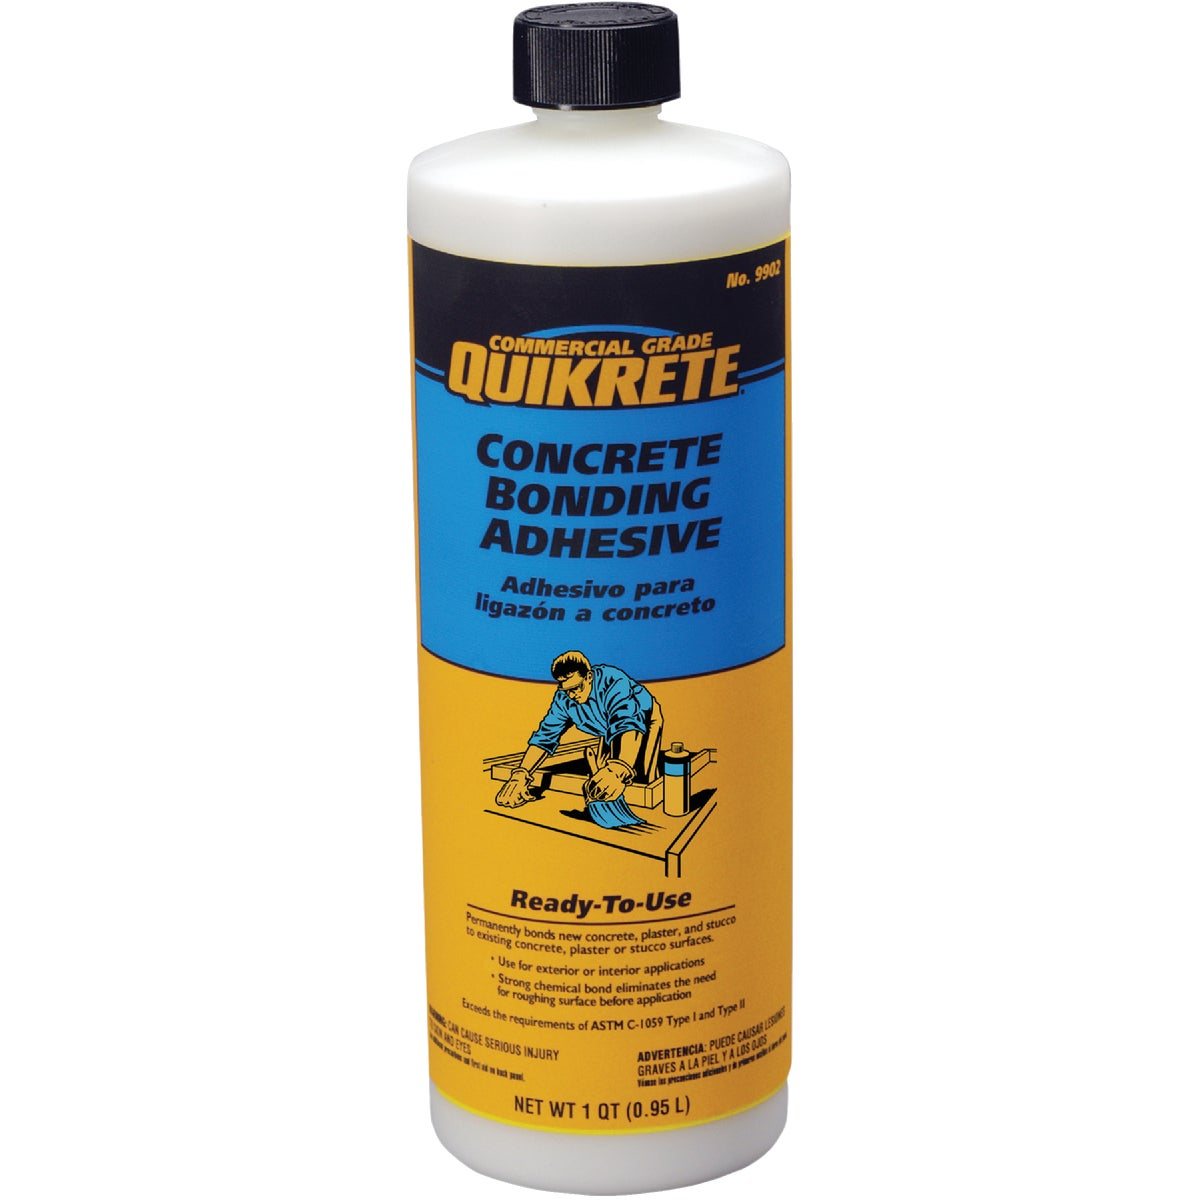 QT CNCRT BONDNG ADHESIVE - 990201 by Quikrete Co